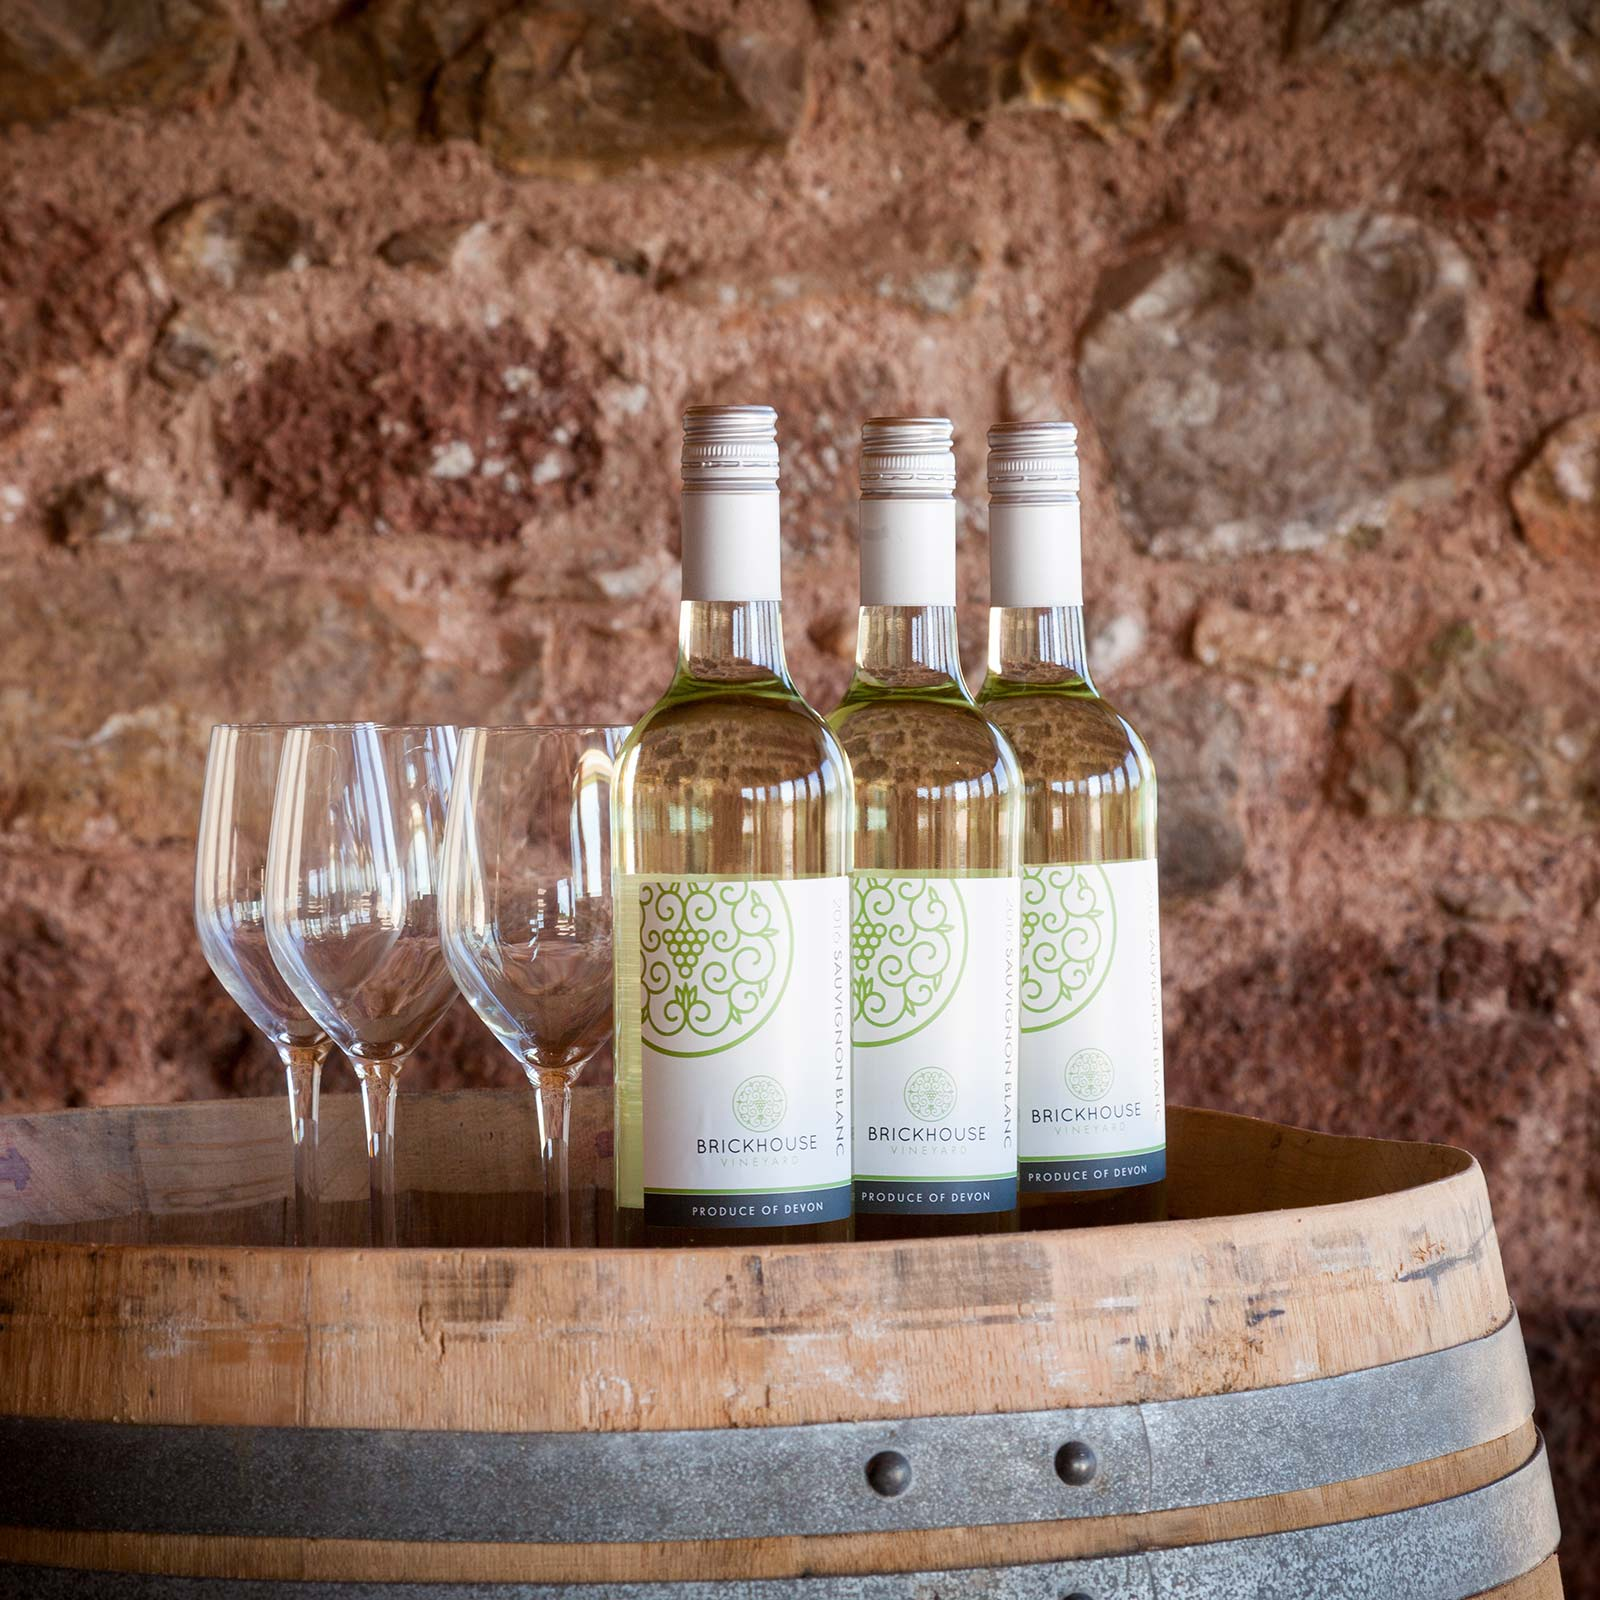 Bottles of Sauvignon Blanc English white wine from Brickhouse Vineyard.